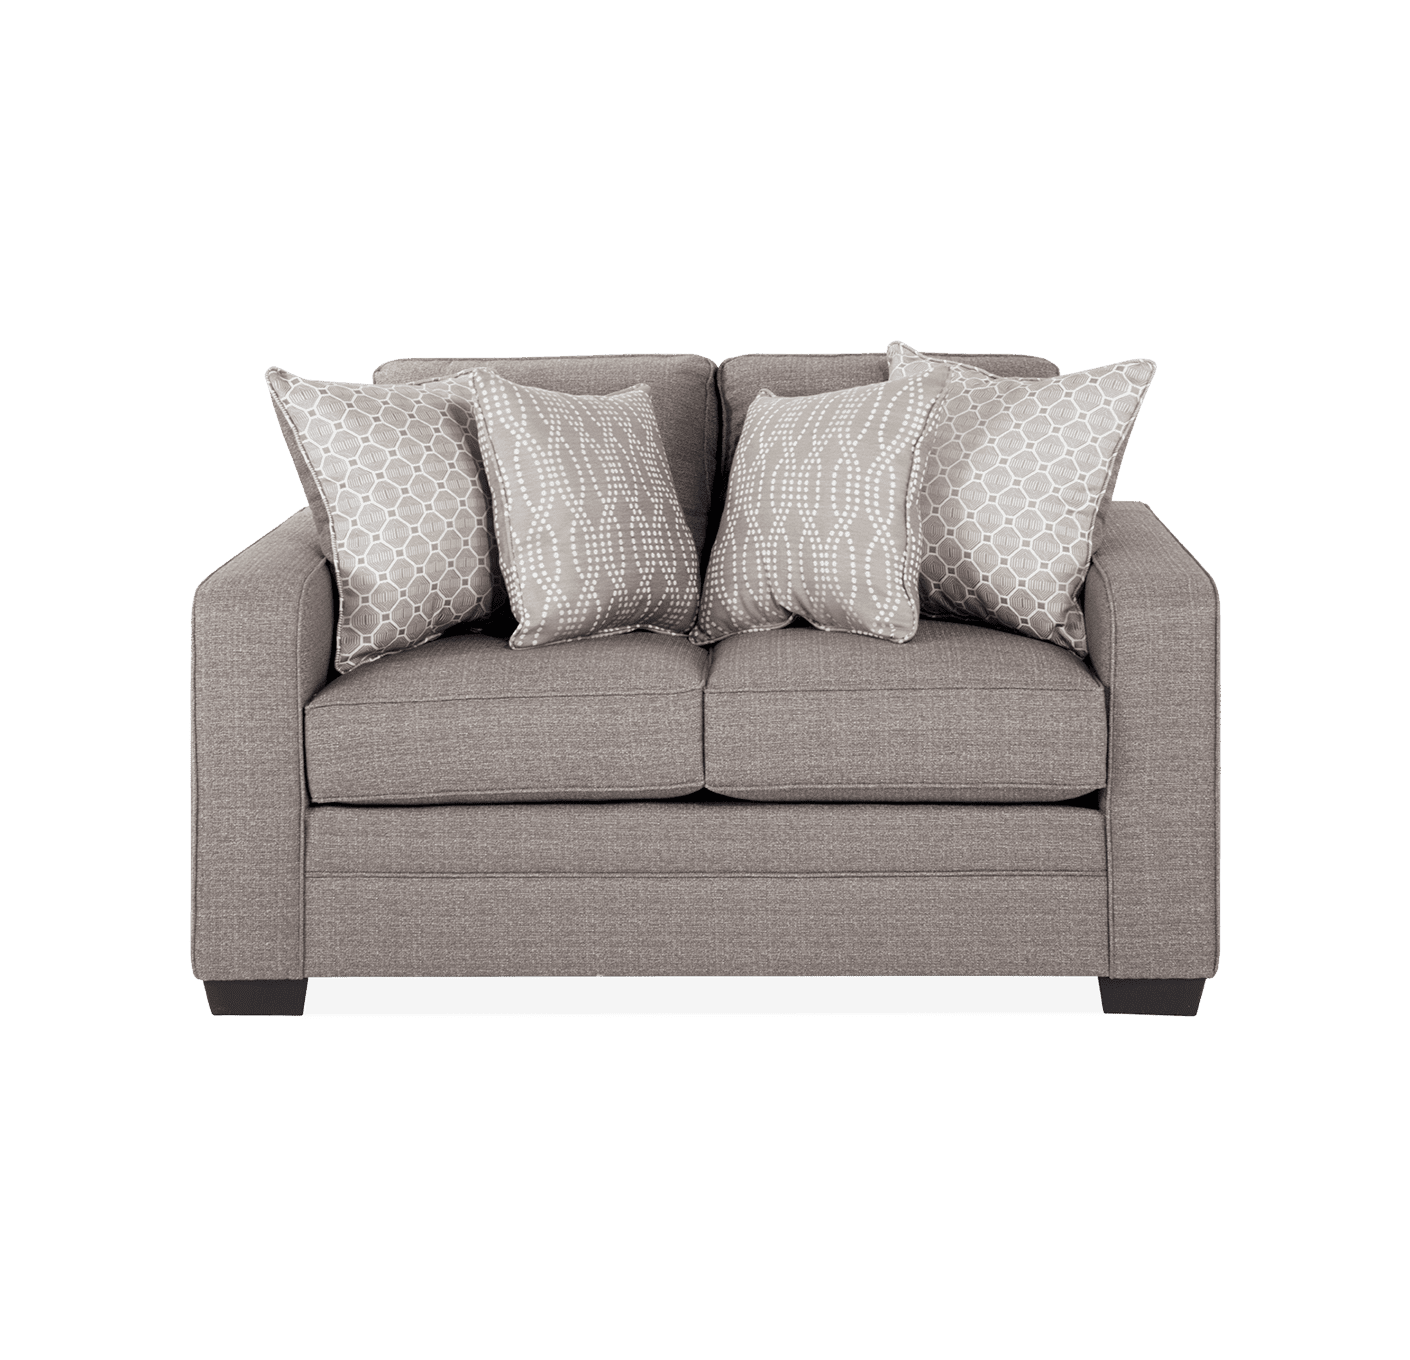 featured_product_Greyson Loveseat_wide.png